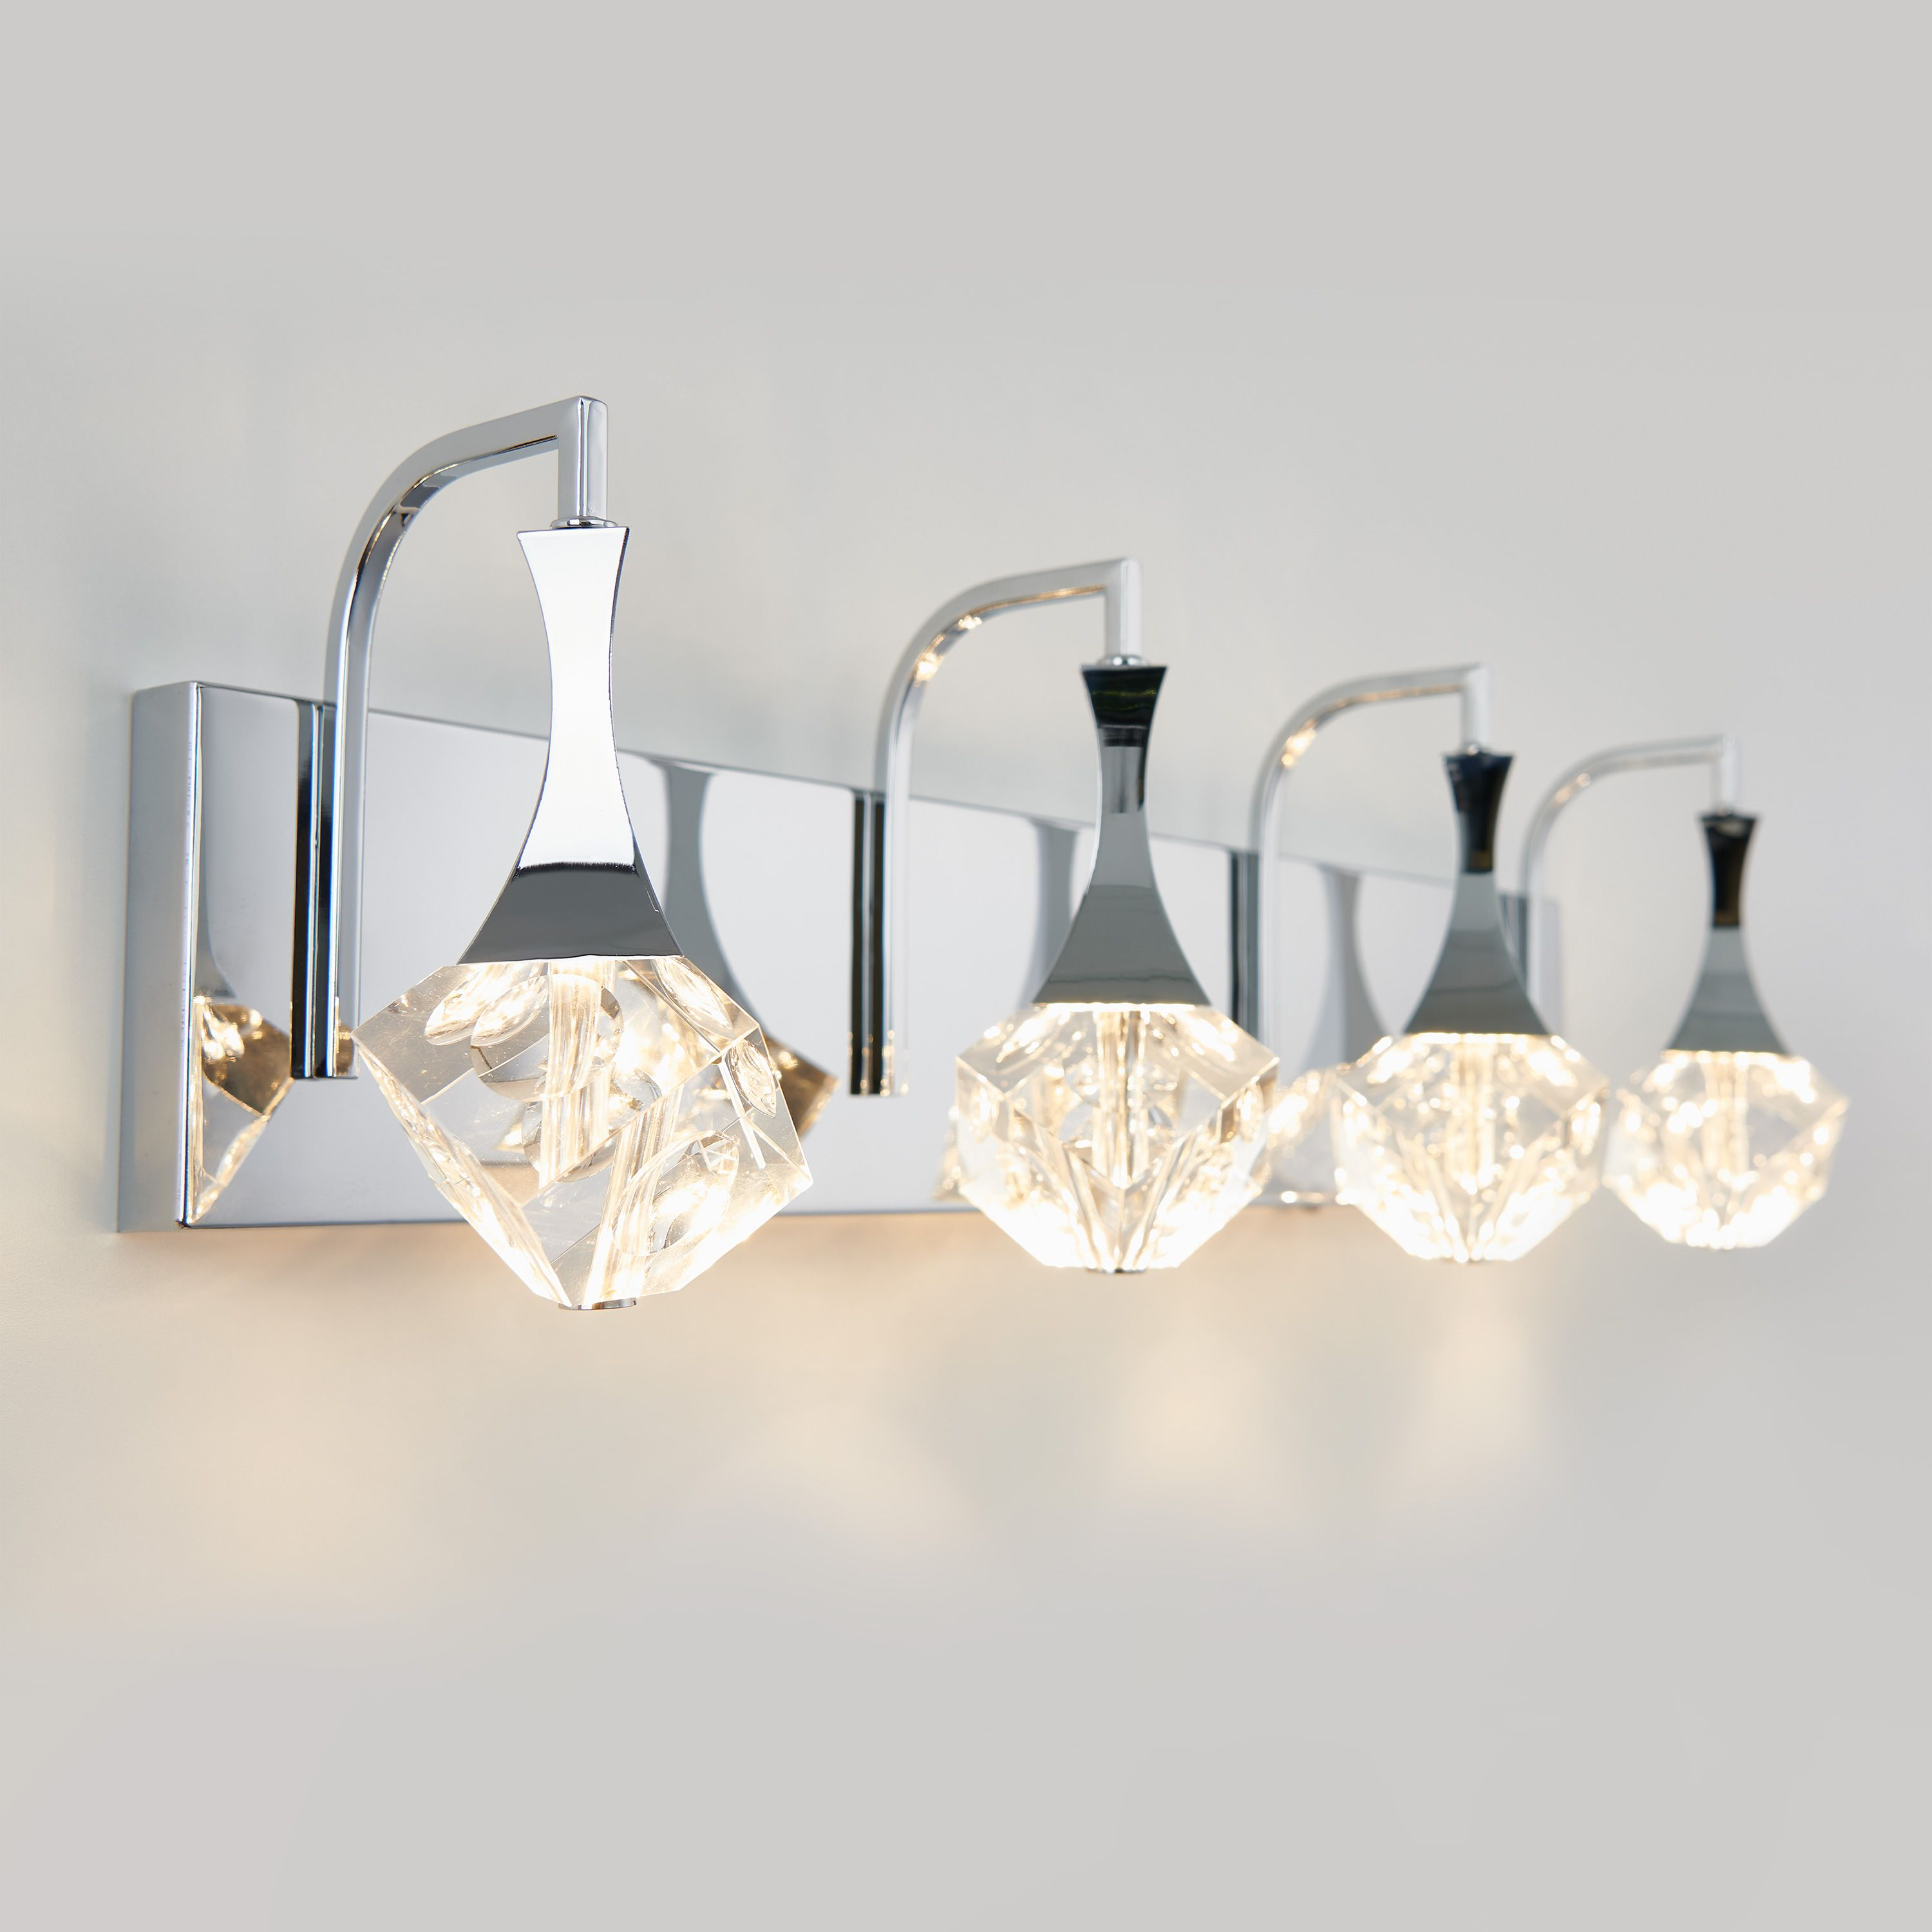 Equip Yourself With A Vanity Light That Will Modernize Your Day To Day Thanks To Its 4 Geometrical Glass Diffusers The Spontaneous Vanity Lighting Glass Diffuser Vanity Light Fixtures